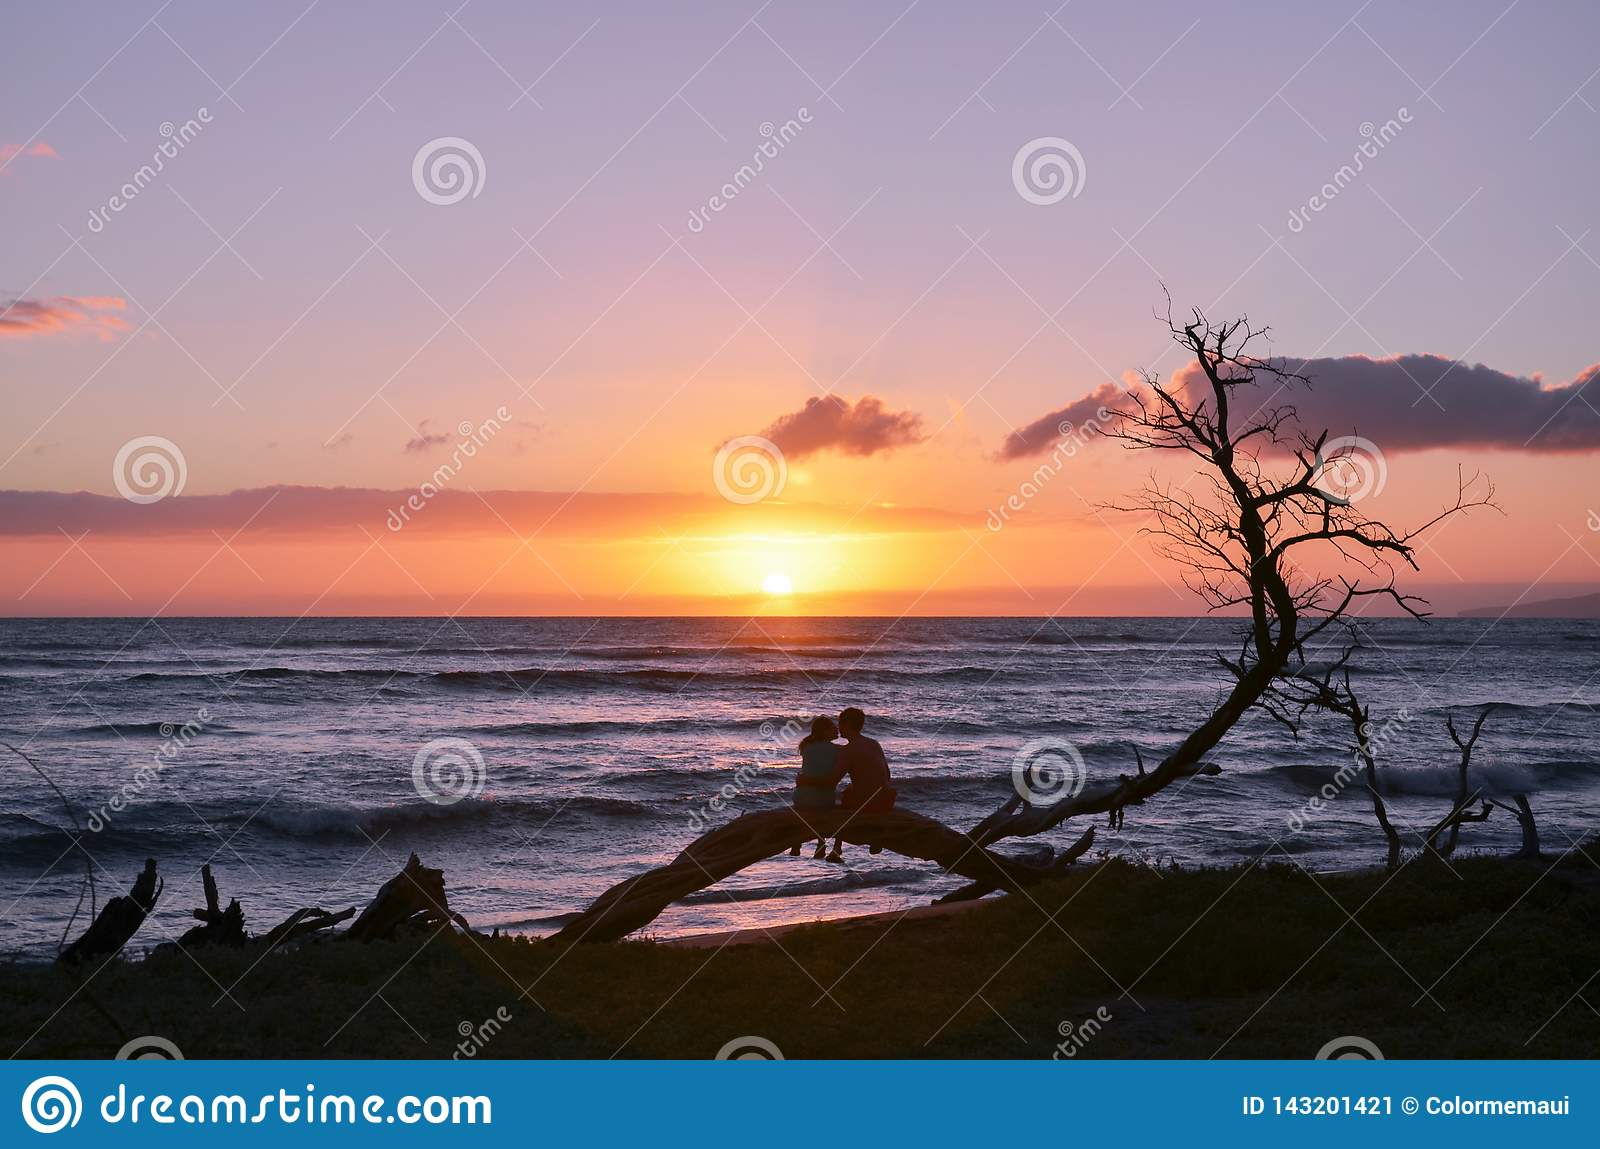 A Couple Sitting on a Tree Branch on the Beach during Sunset in Maui Hawaii